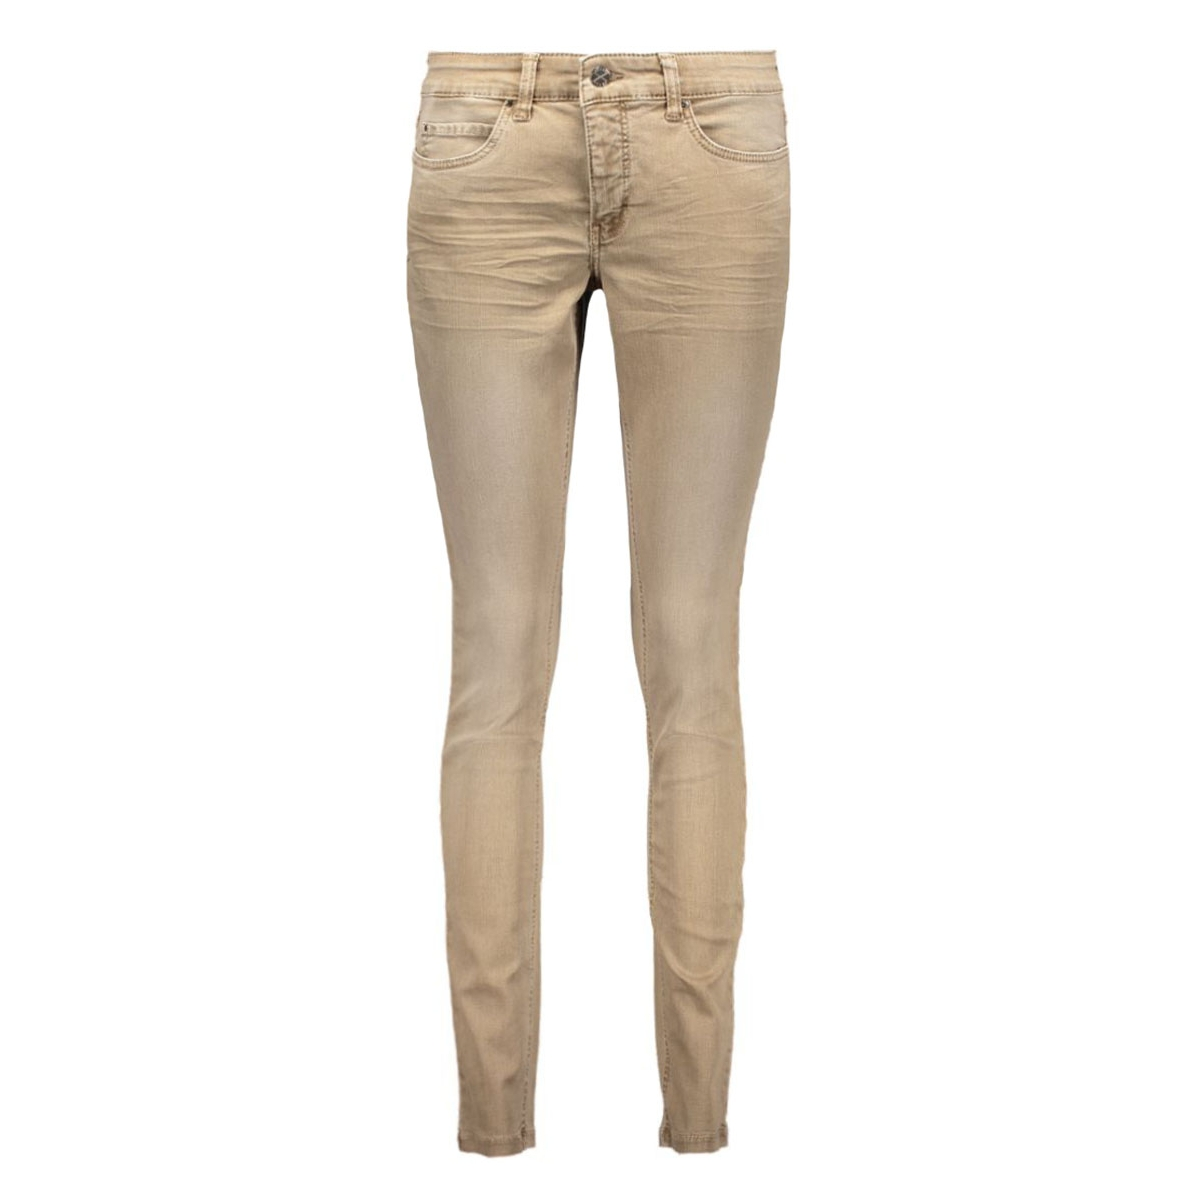 dream 5457 00 0375 16 mac jeans sanddrift